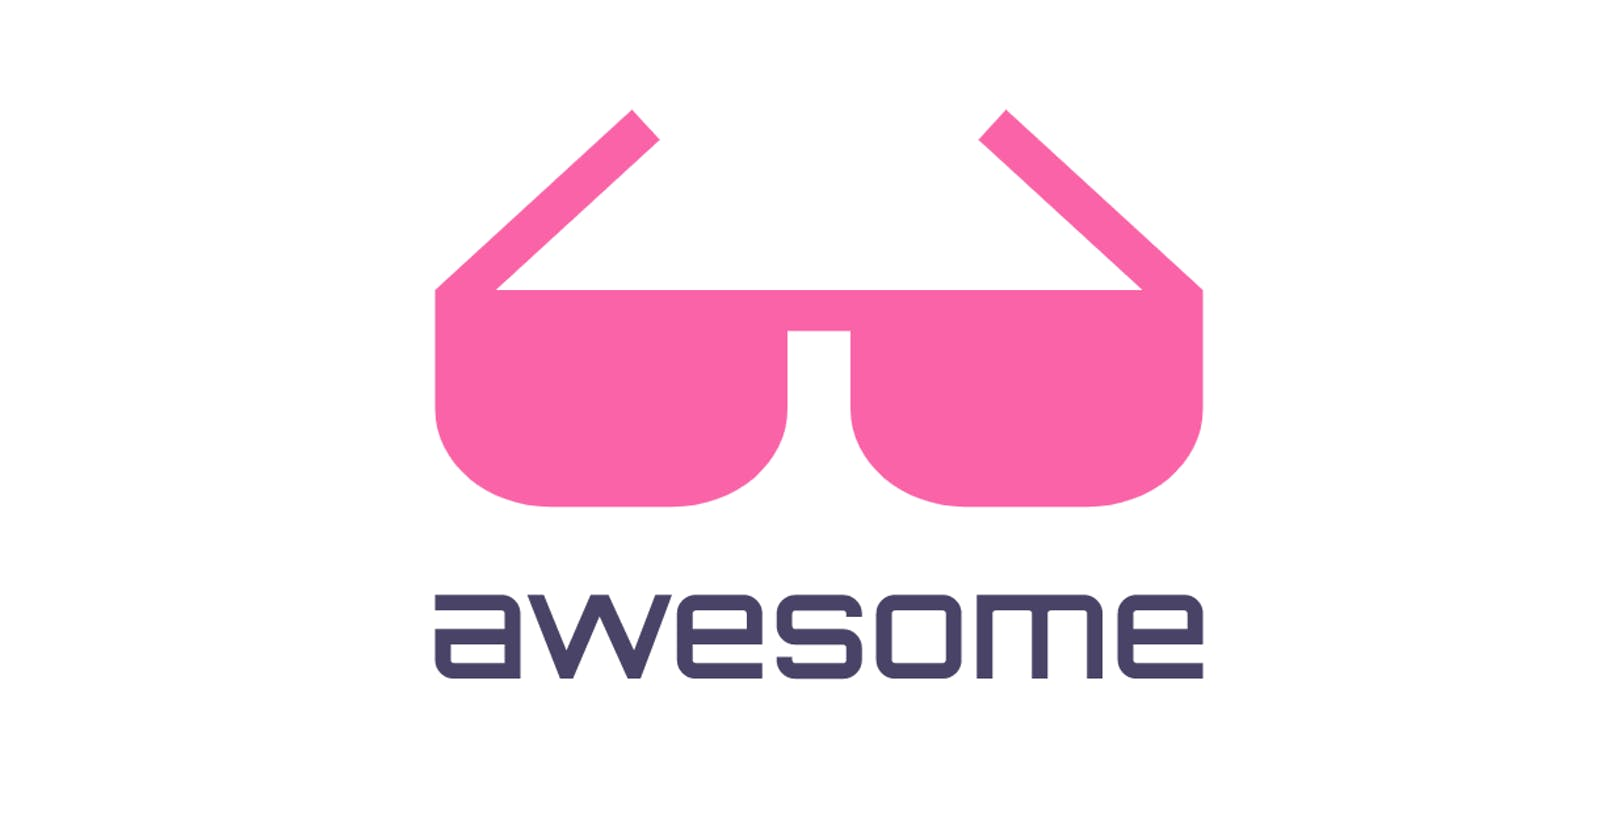 Want to learn awesome stuff? Here's the awesome list ;)